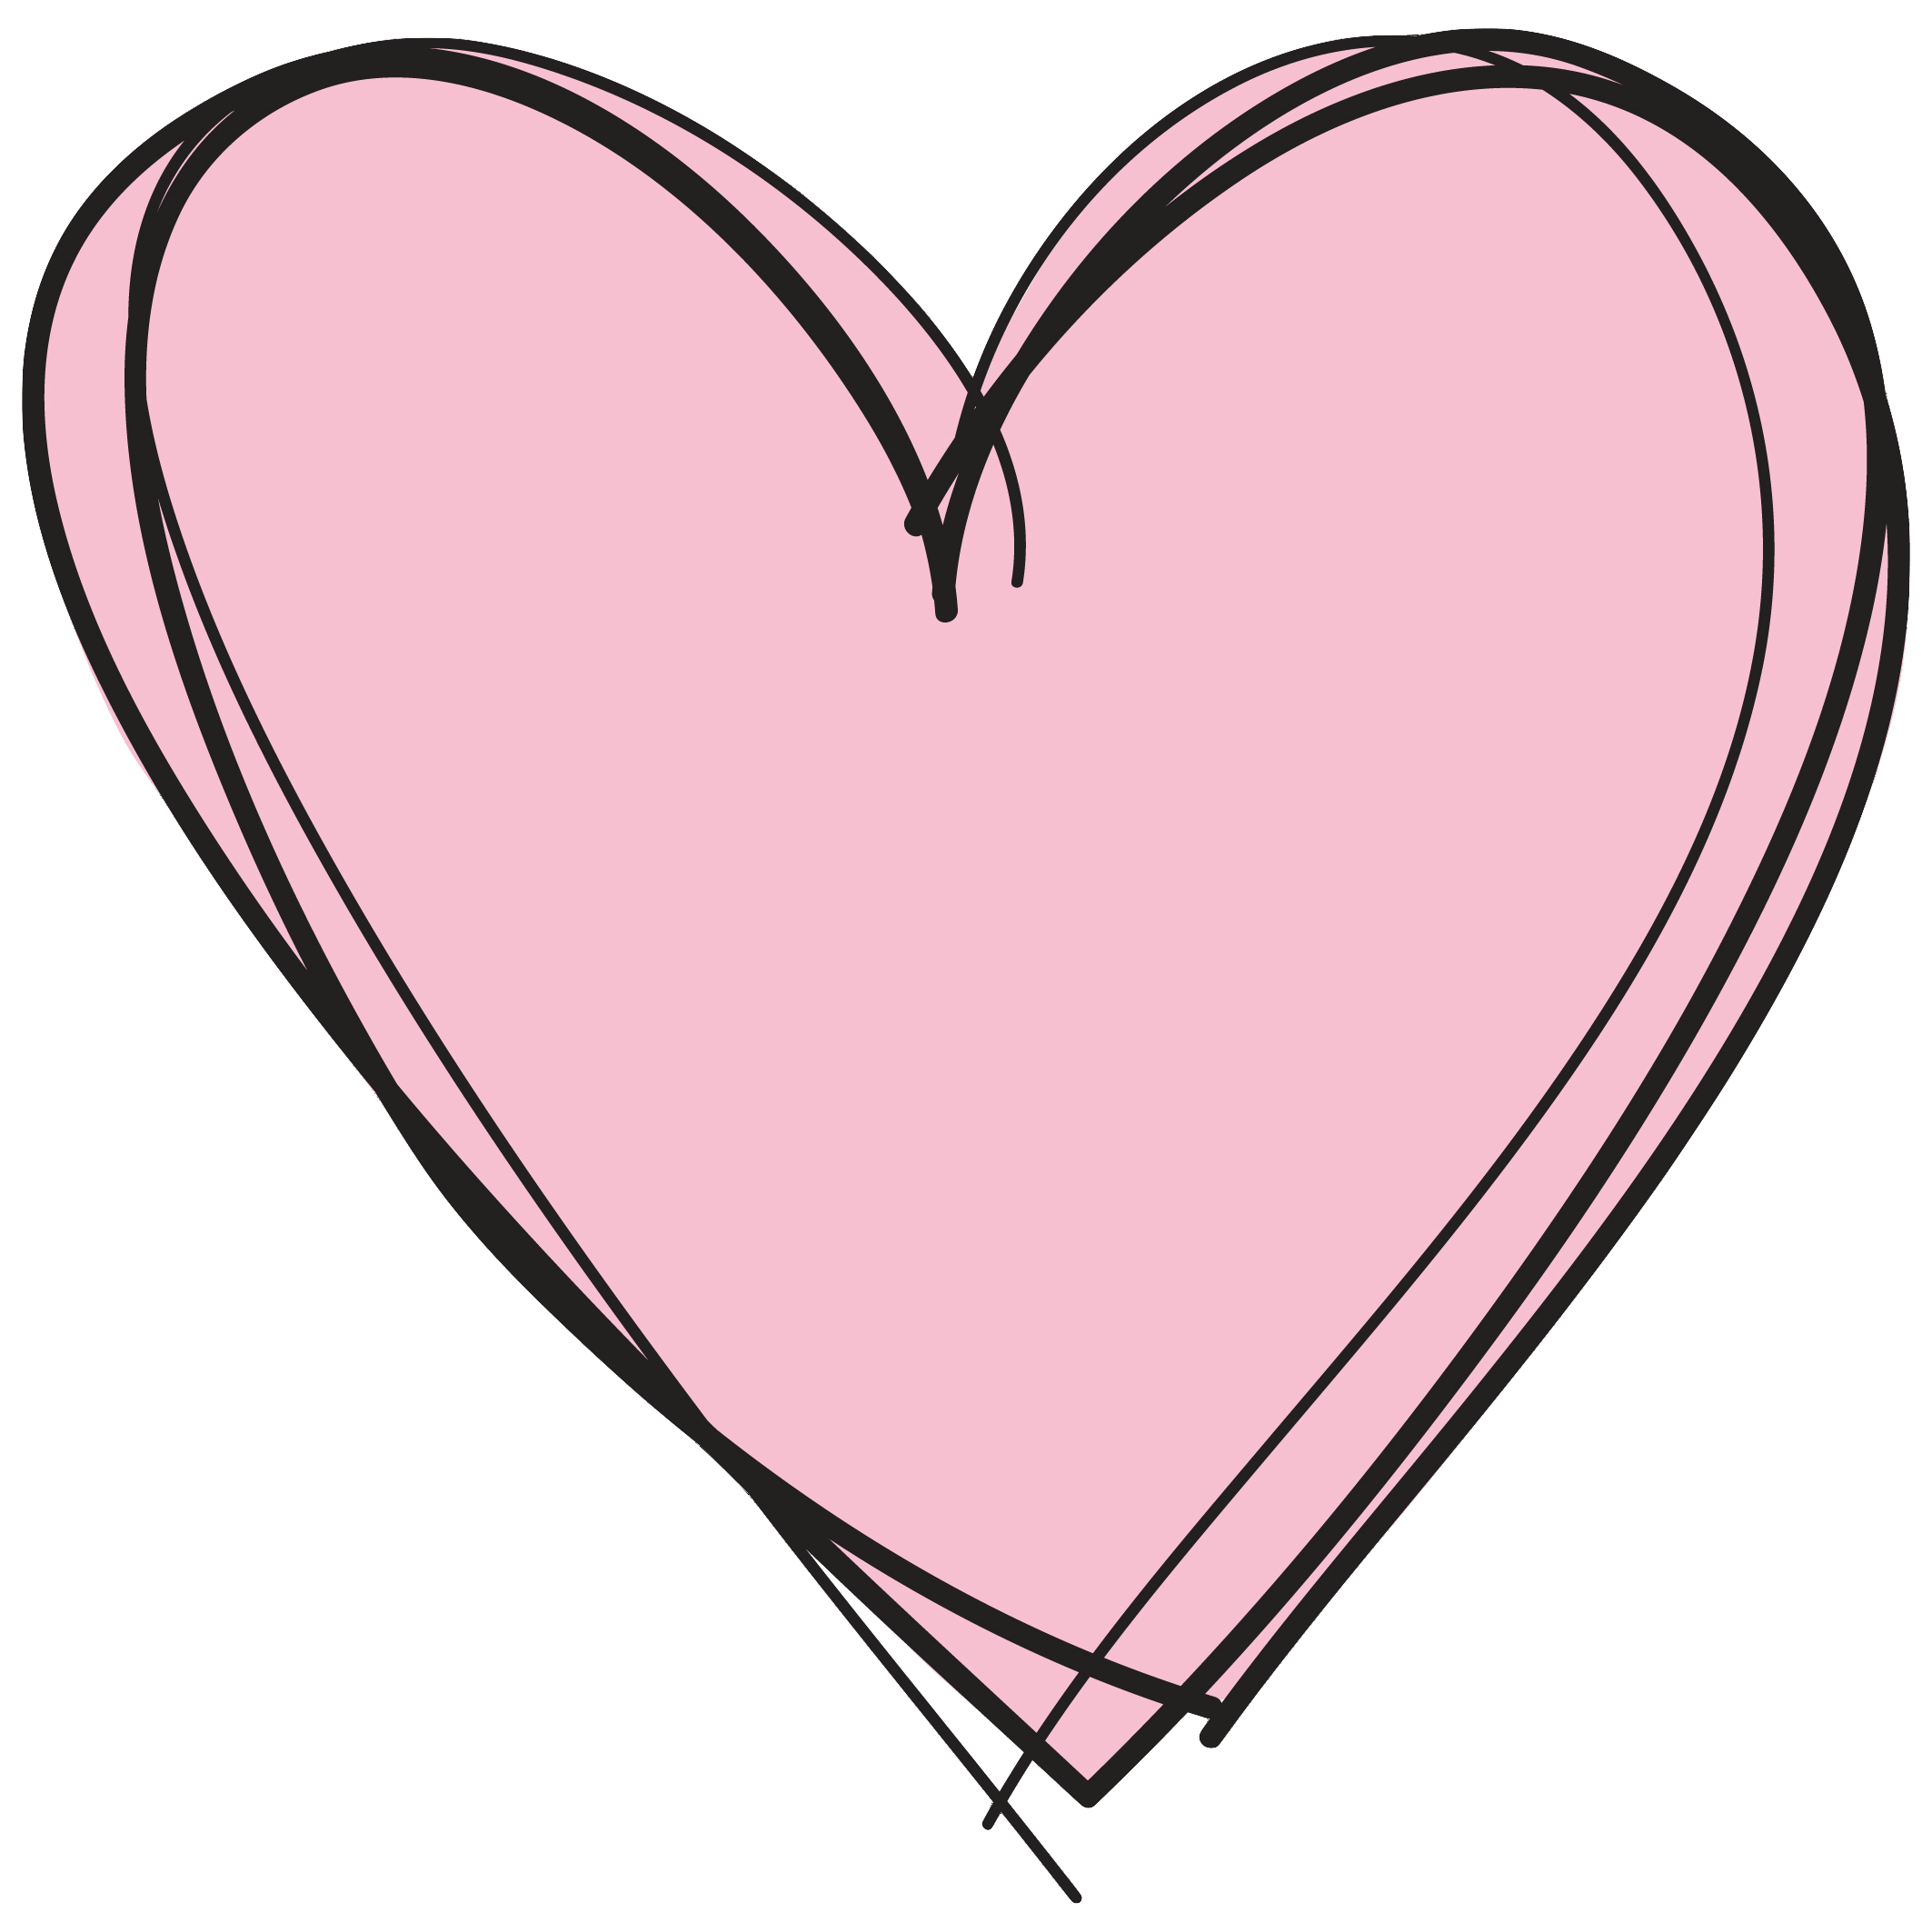 pink heart transparent background